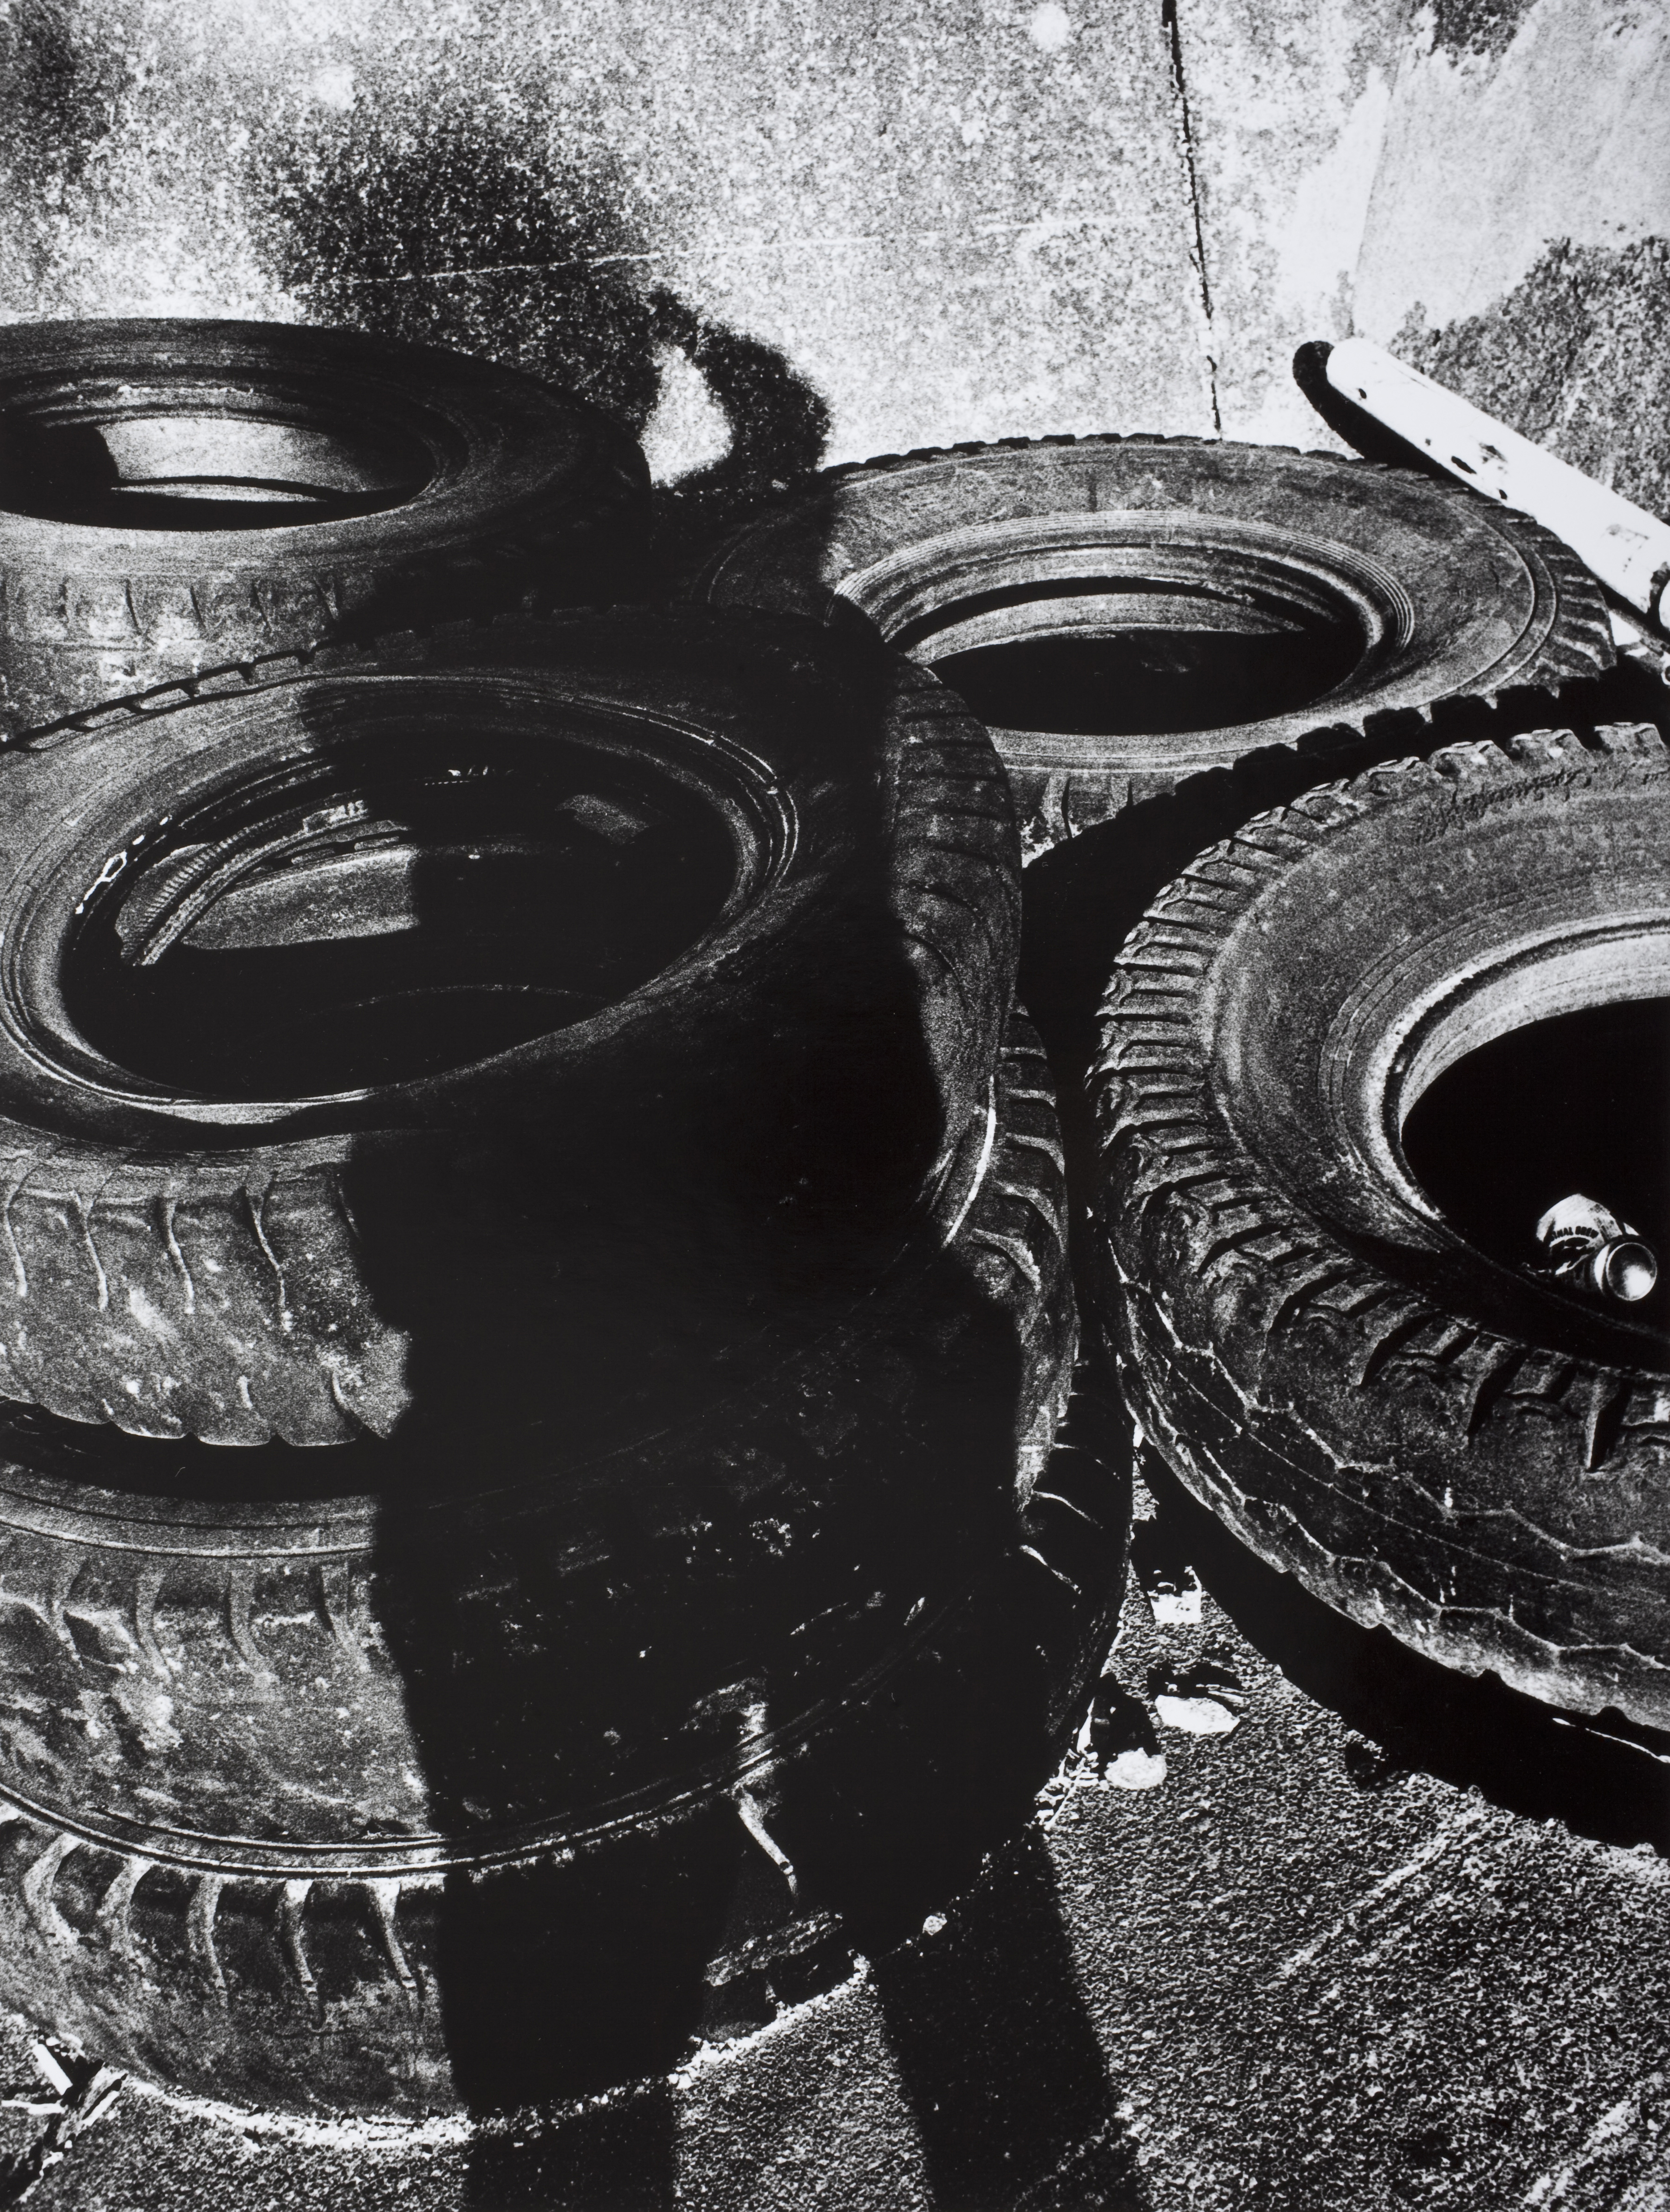 Untitled (shadows with tires), printed 2009